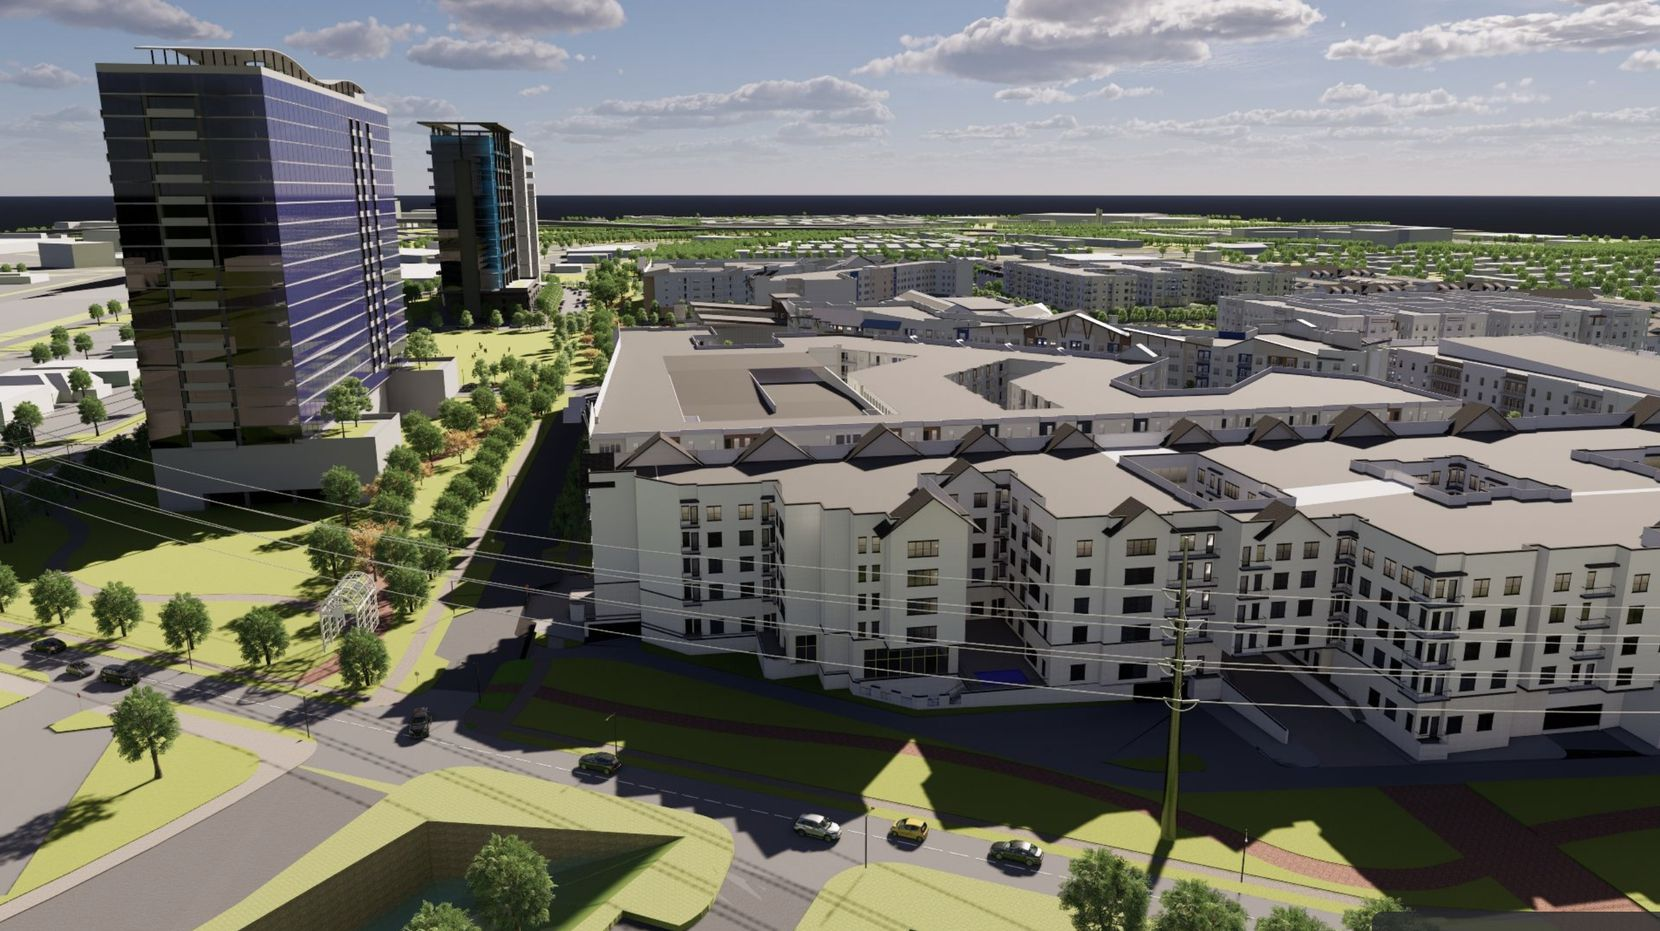 New apartments, retail and offices are included in the redevelopment of Collin Creek.